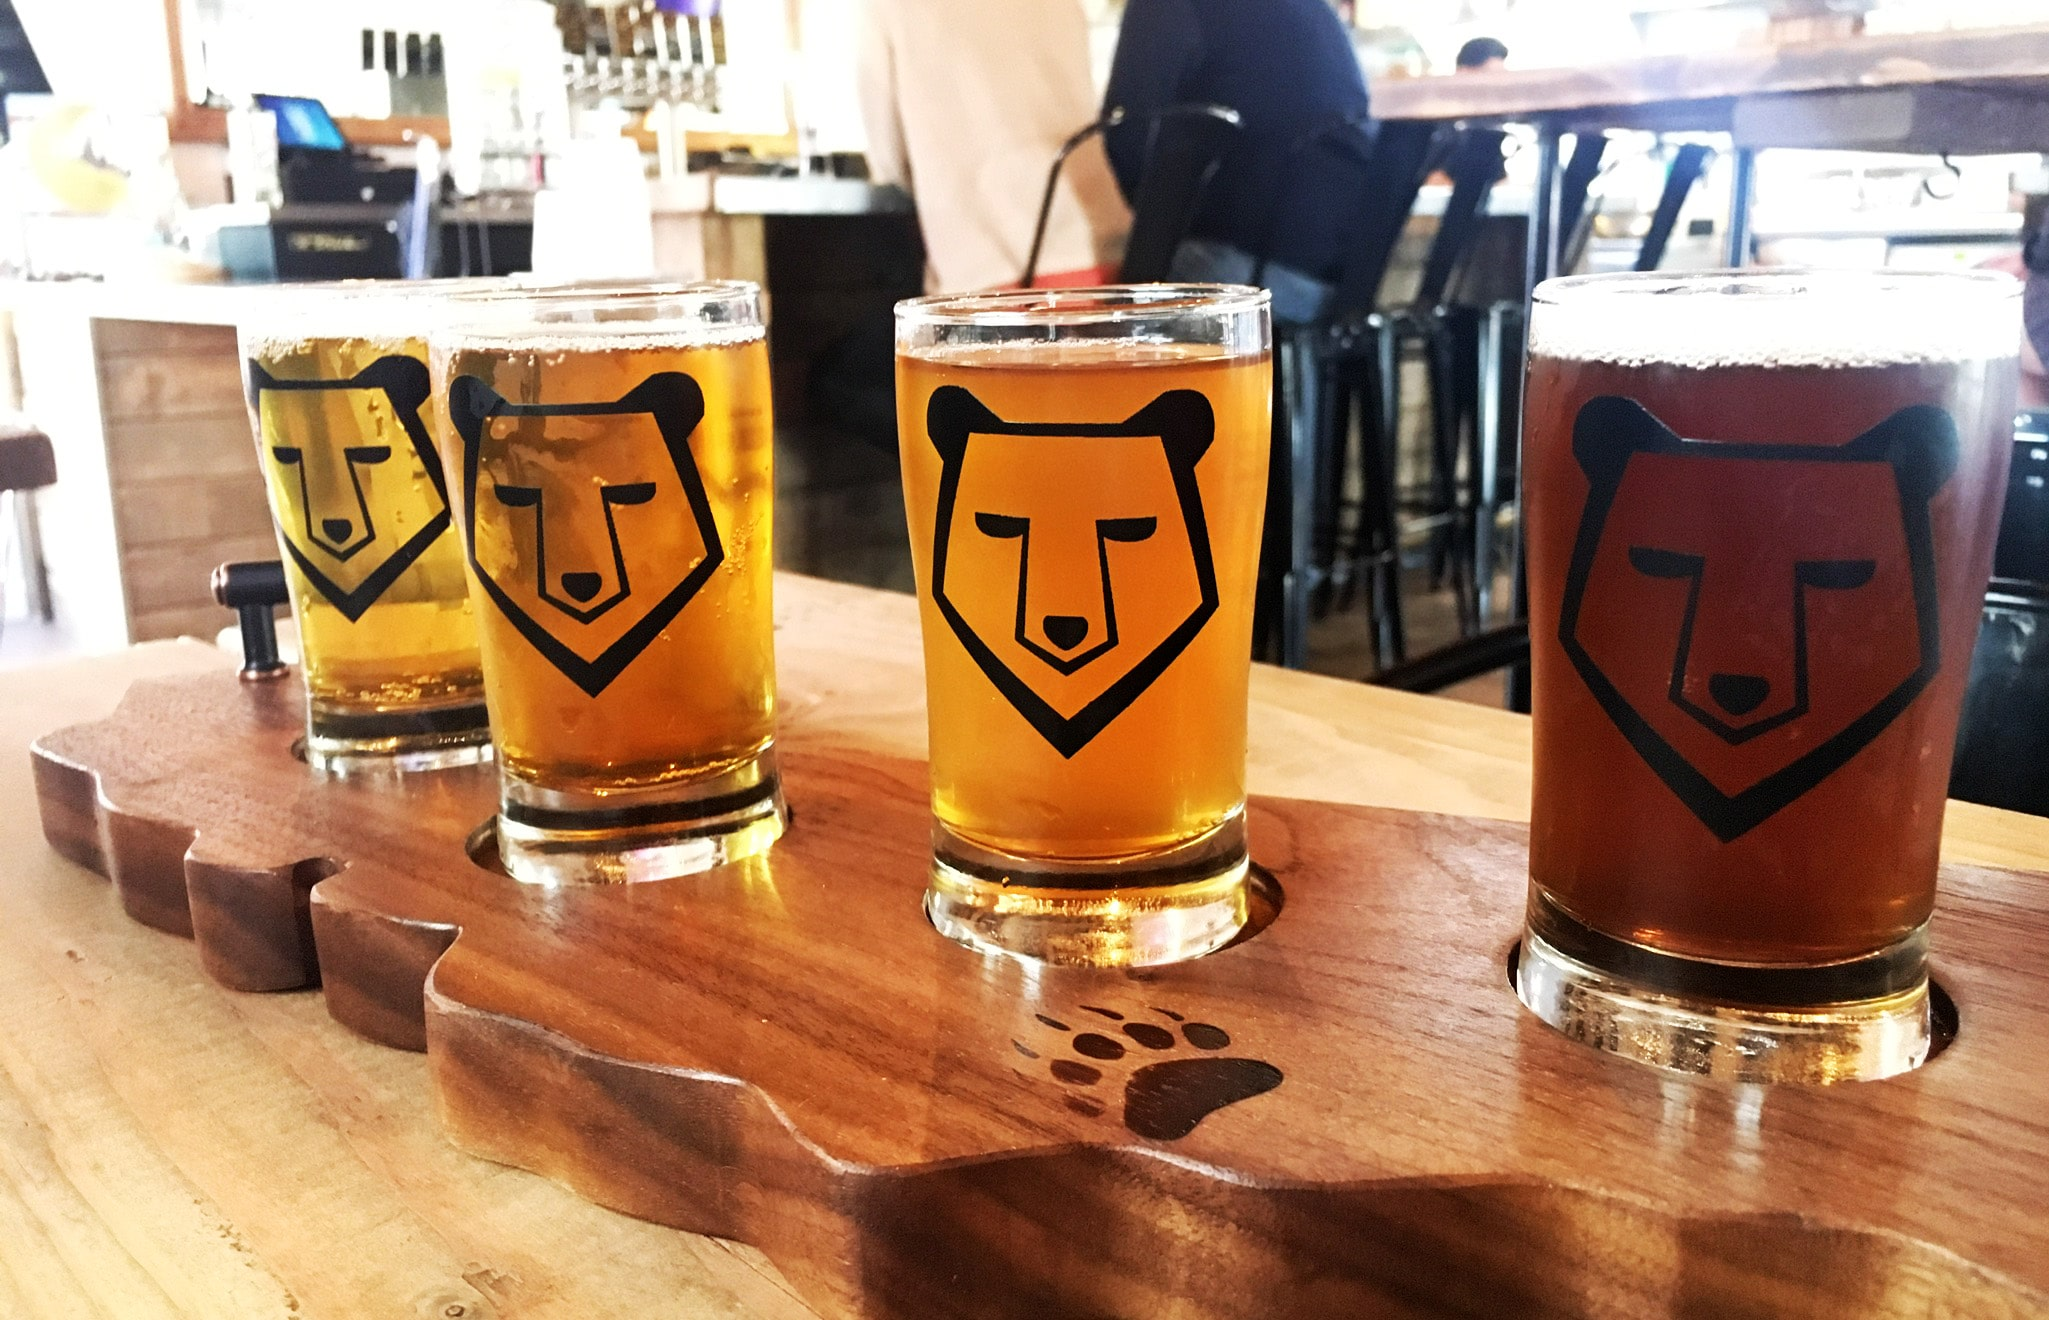 Beer sampler from Brass Bear Brewing and Bistro